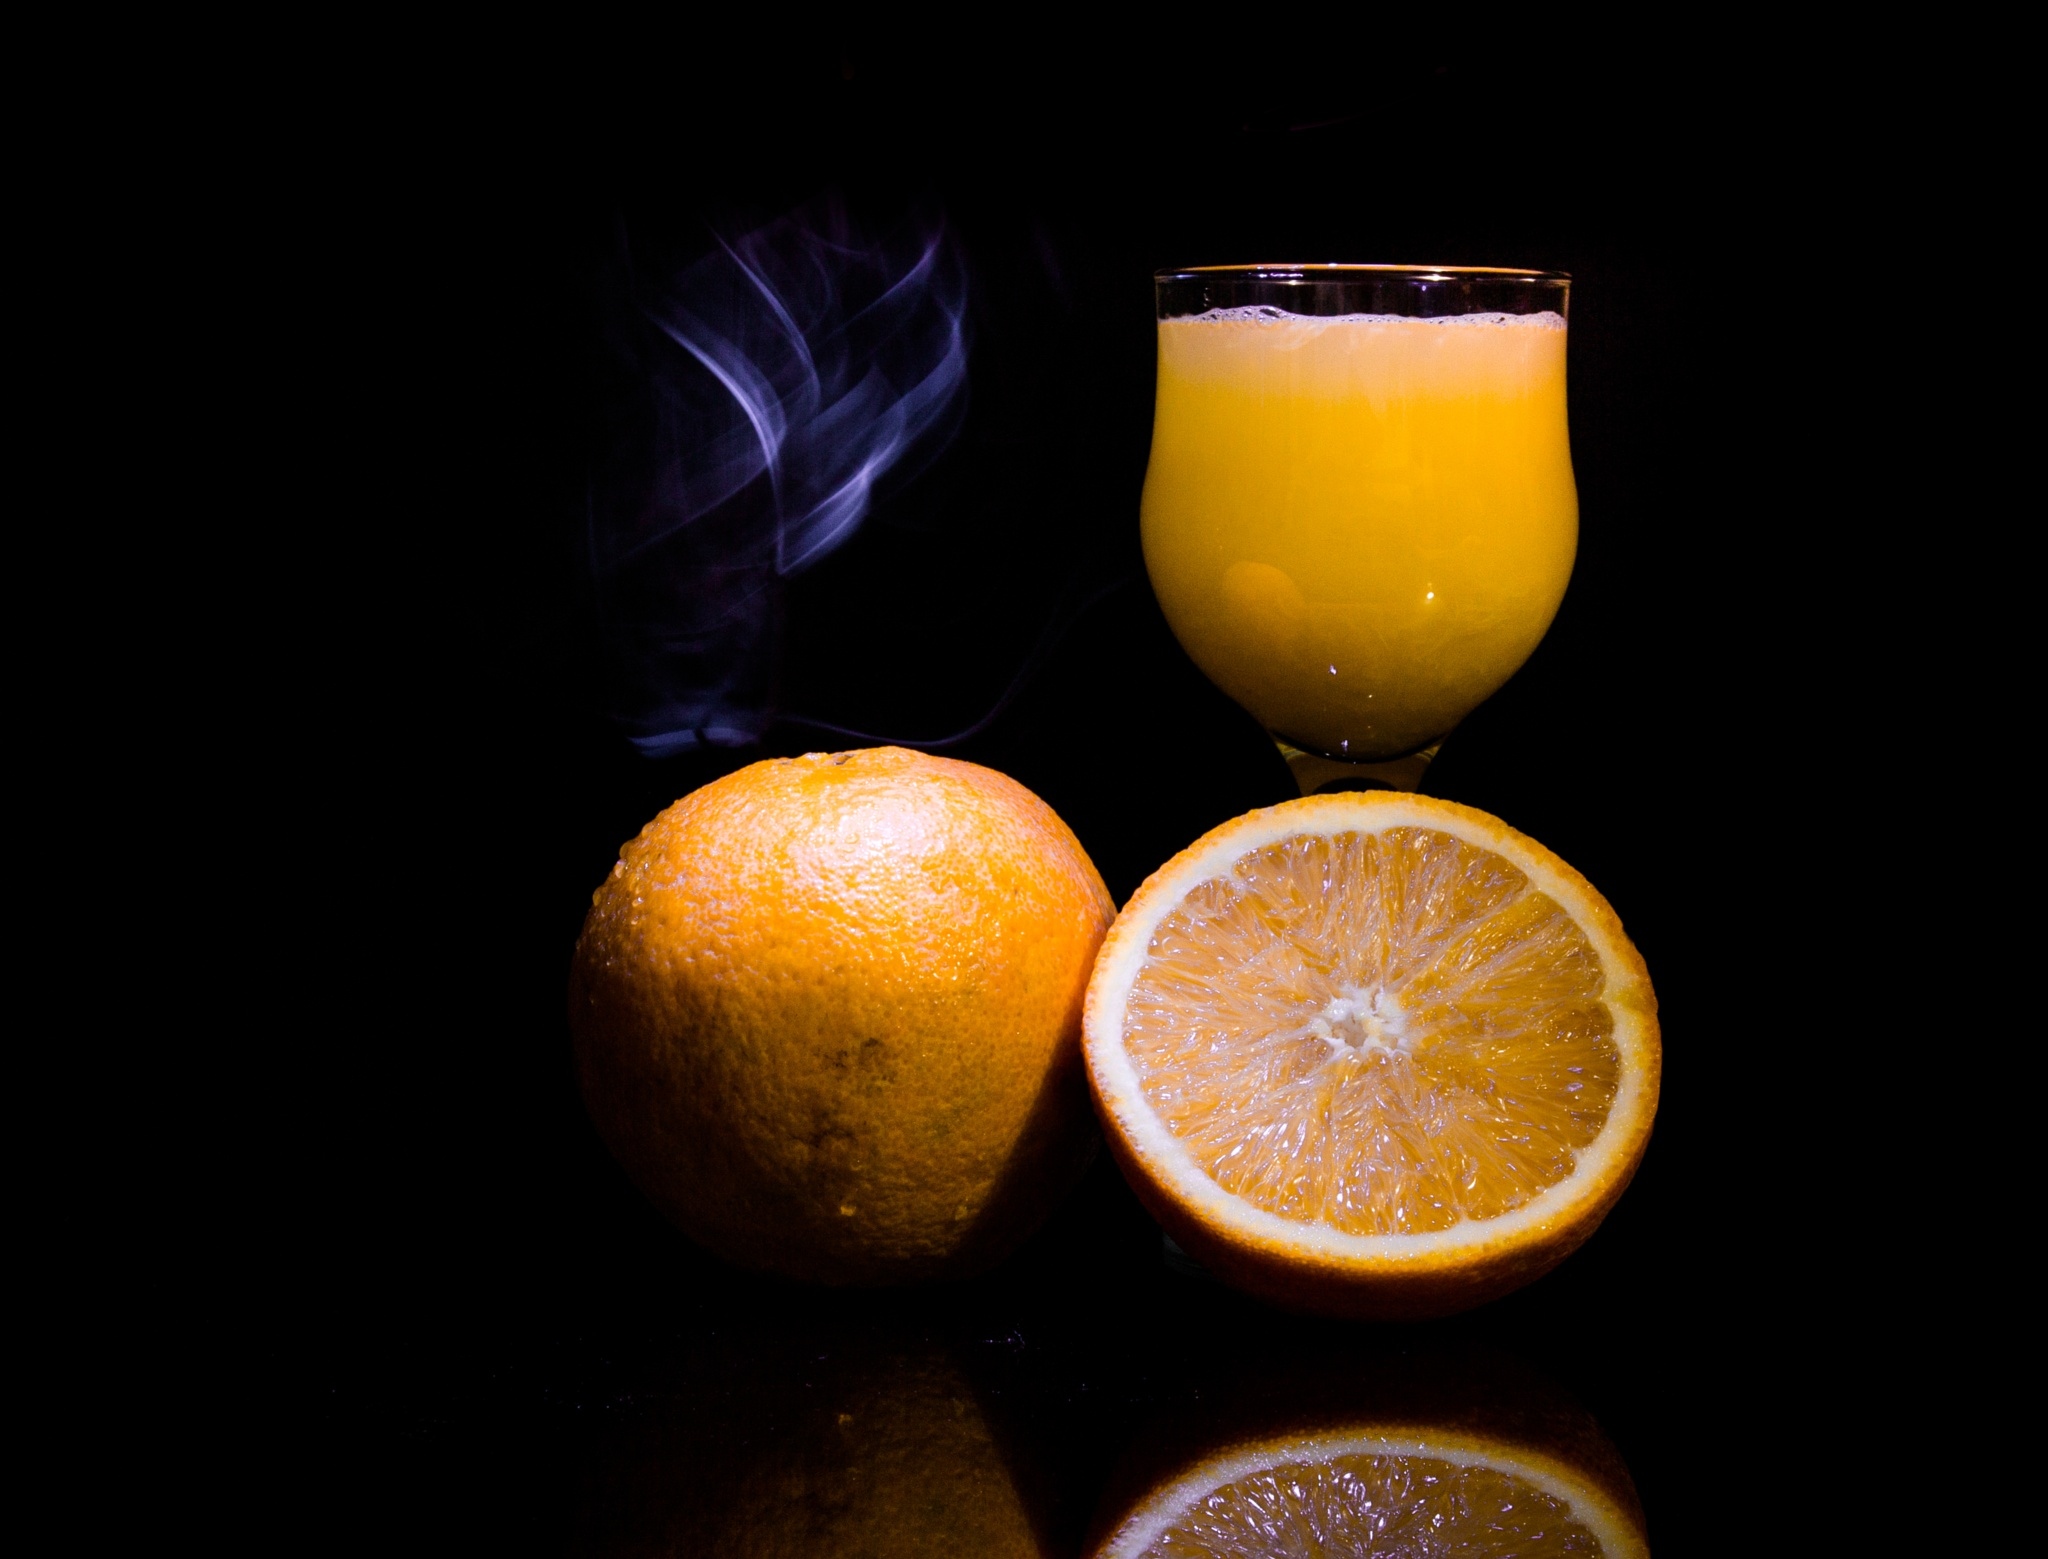 Refreshing drink by Husam Hikmat